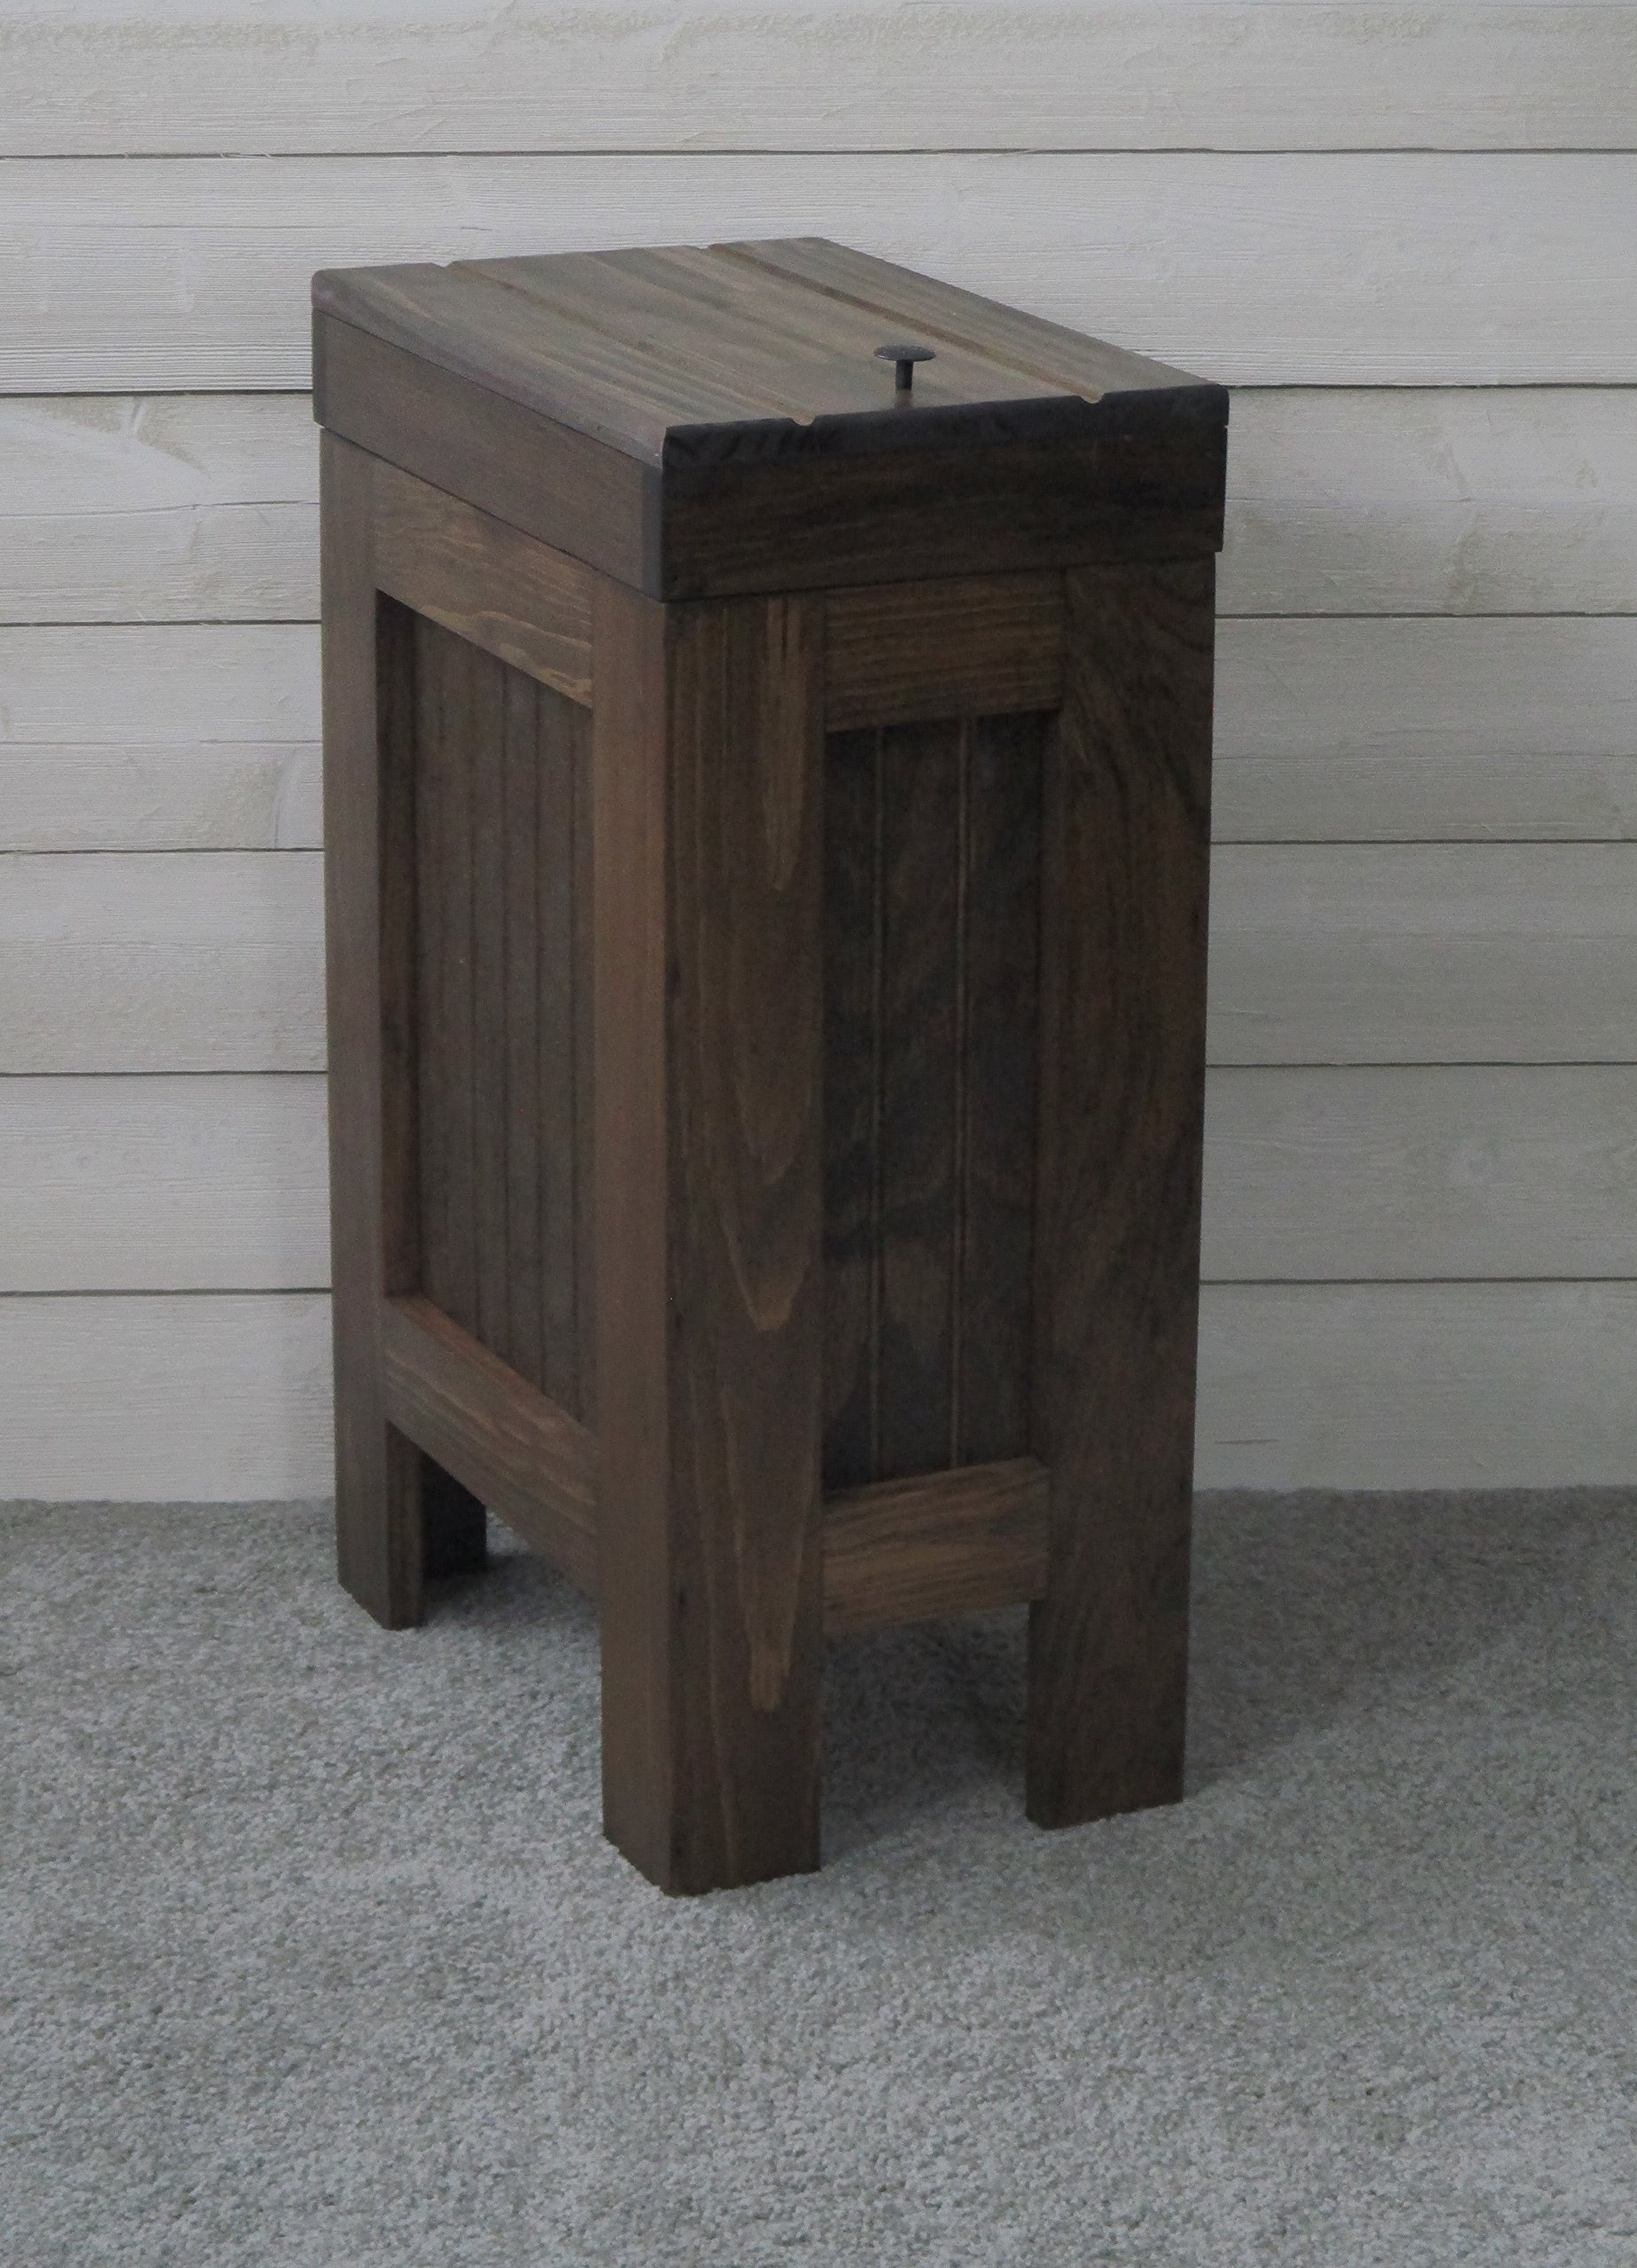 Wooden Wood Trash Bin Kitchen Garbage Can Rectangular 13 Gallon Solid Pine - Walnut Stain - Rustic - Metal Knob - Hand Made in USA